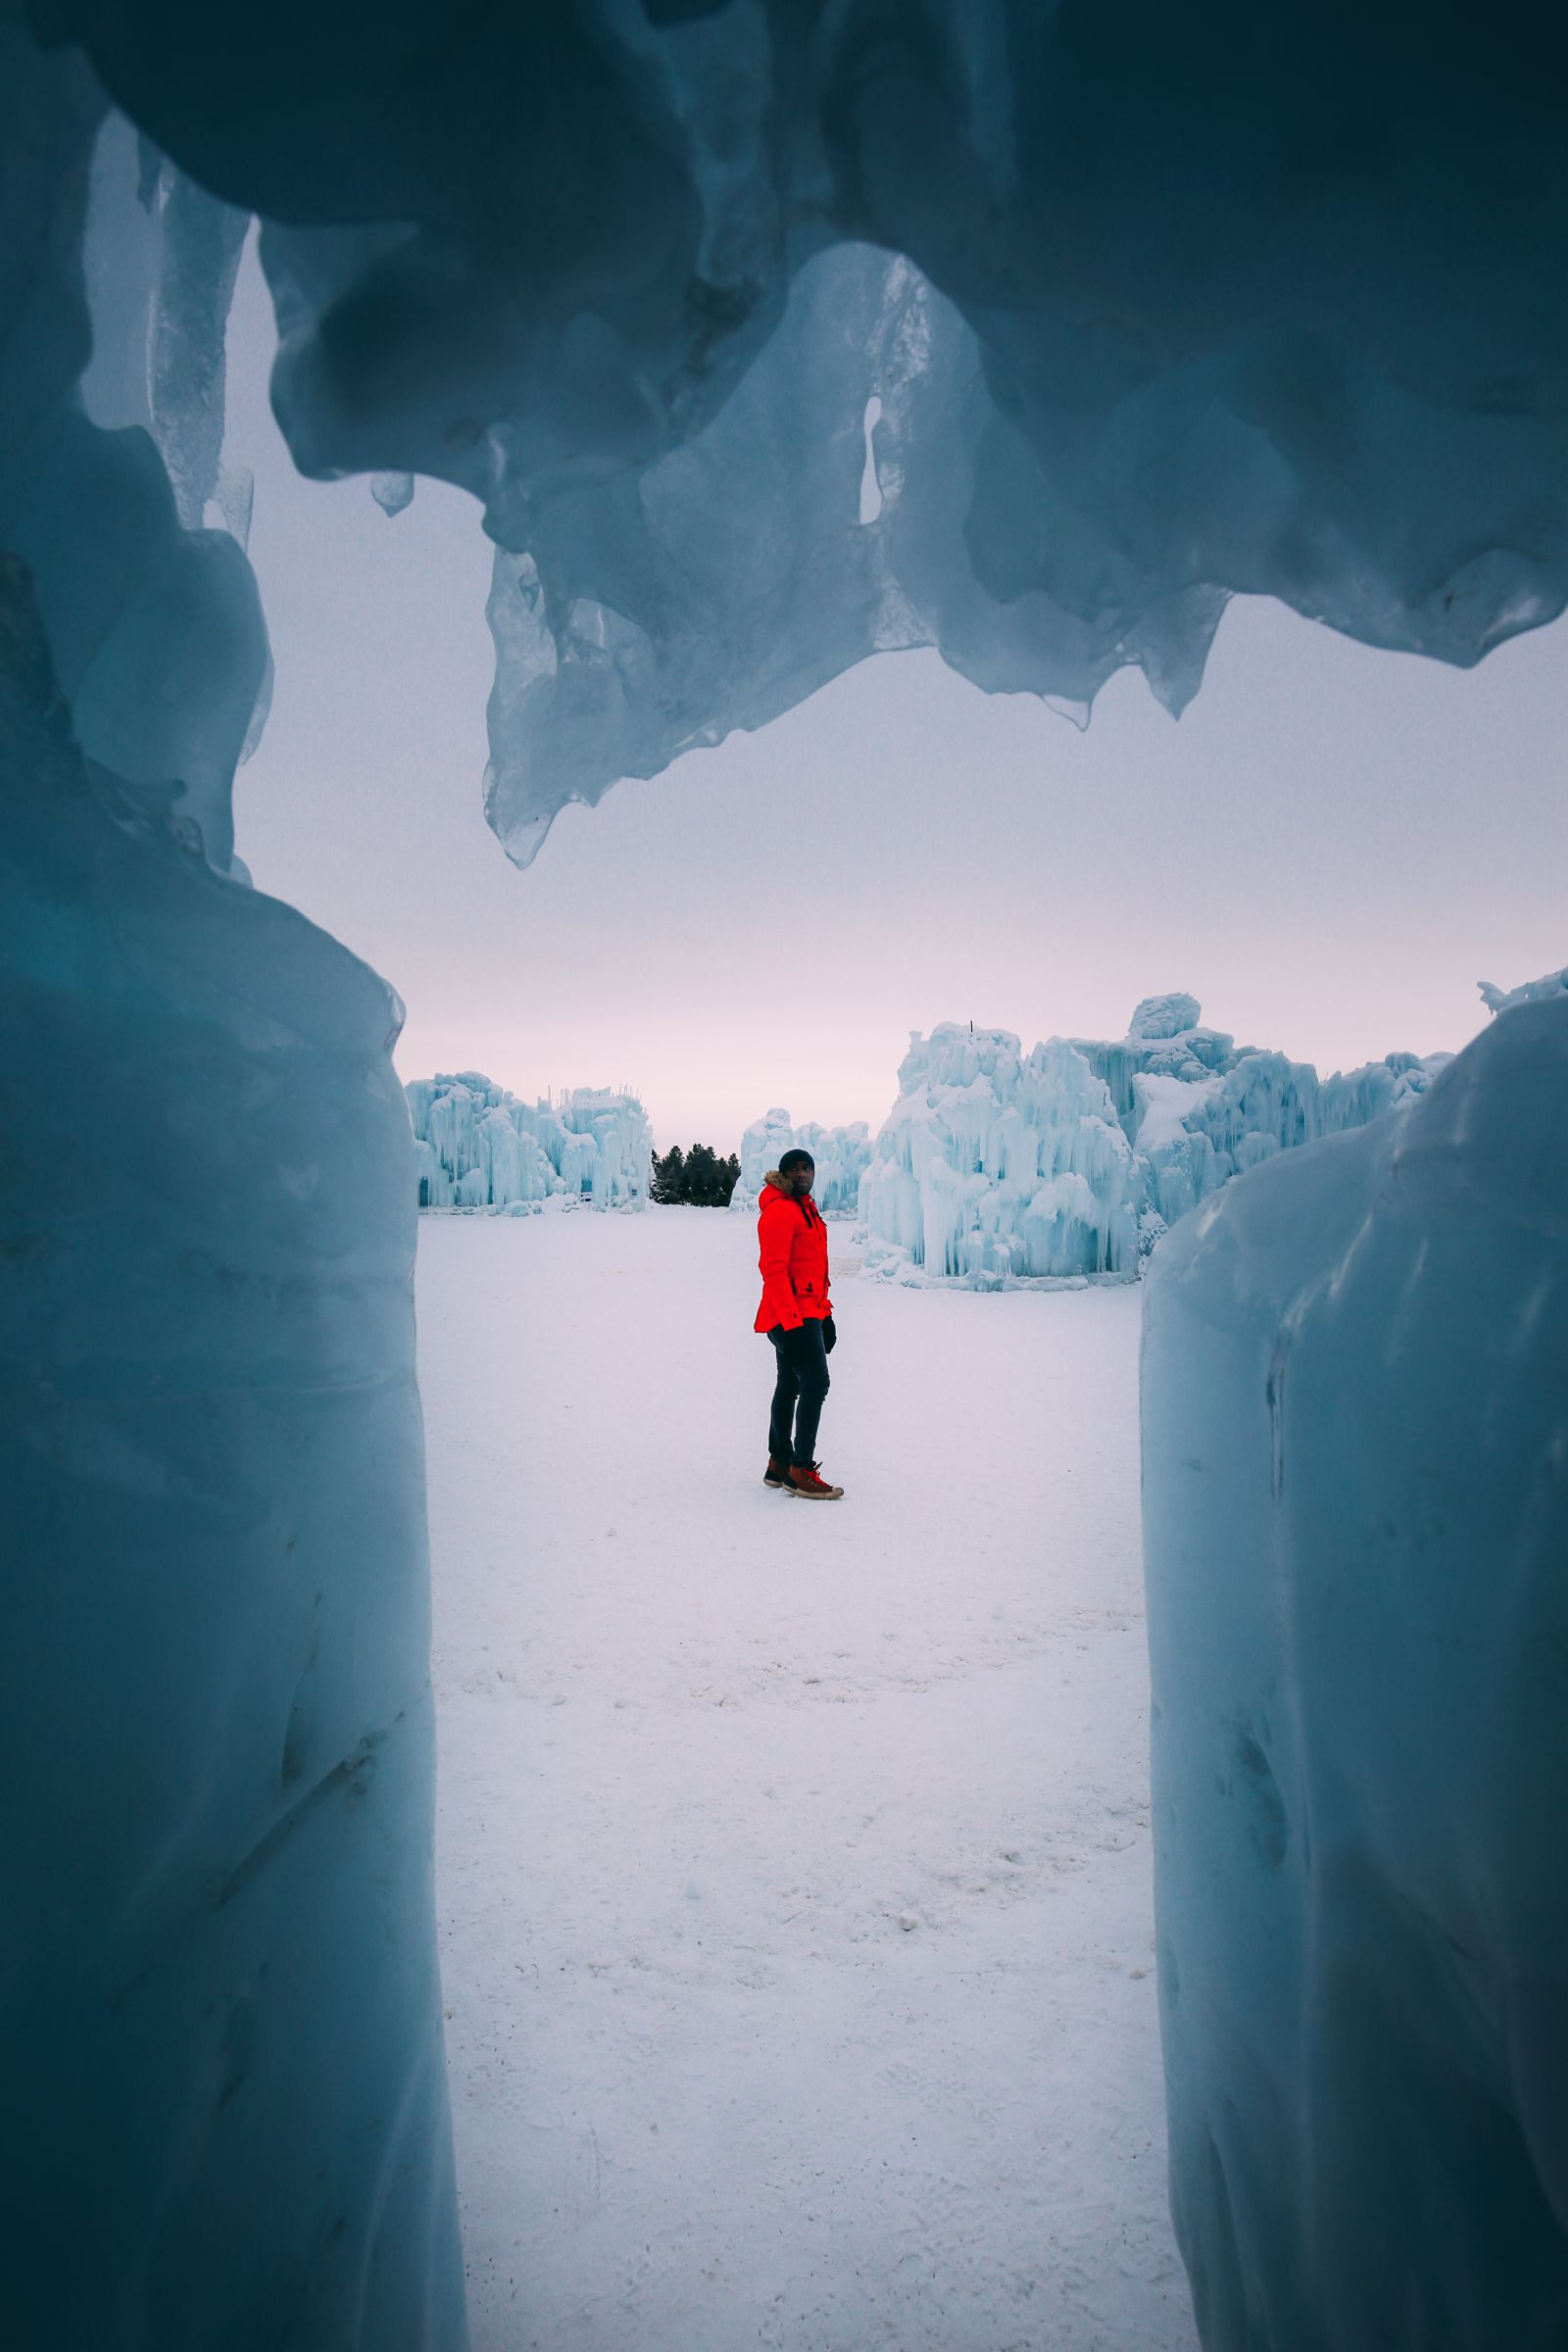 Edmonton City In Alberta Canada - Ice Castles And Travel Photos (7)